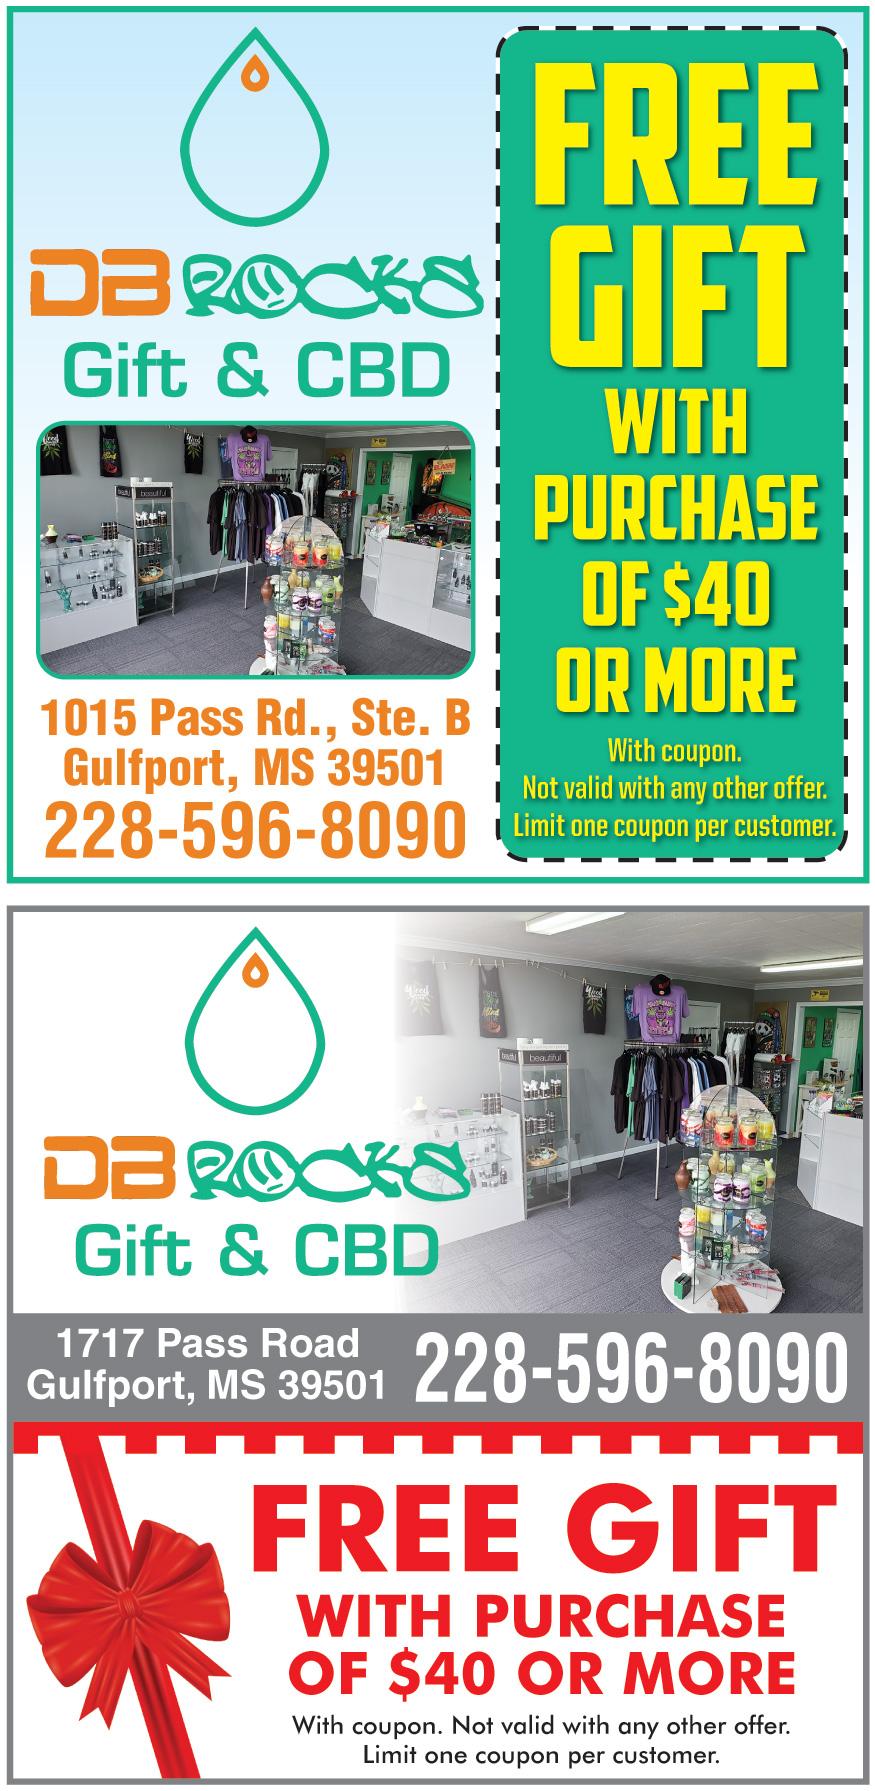 DB ROCKS GIFT SHOP AND